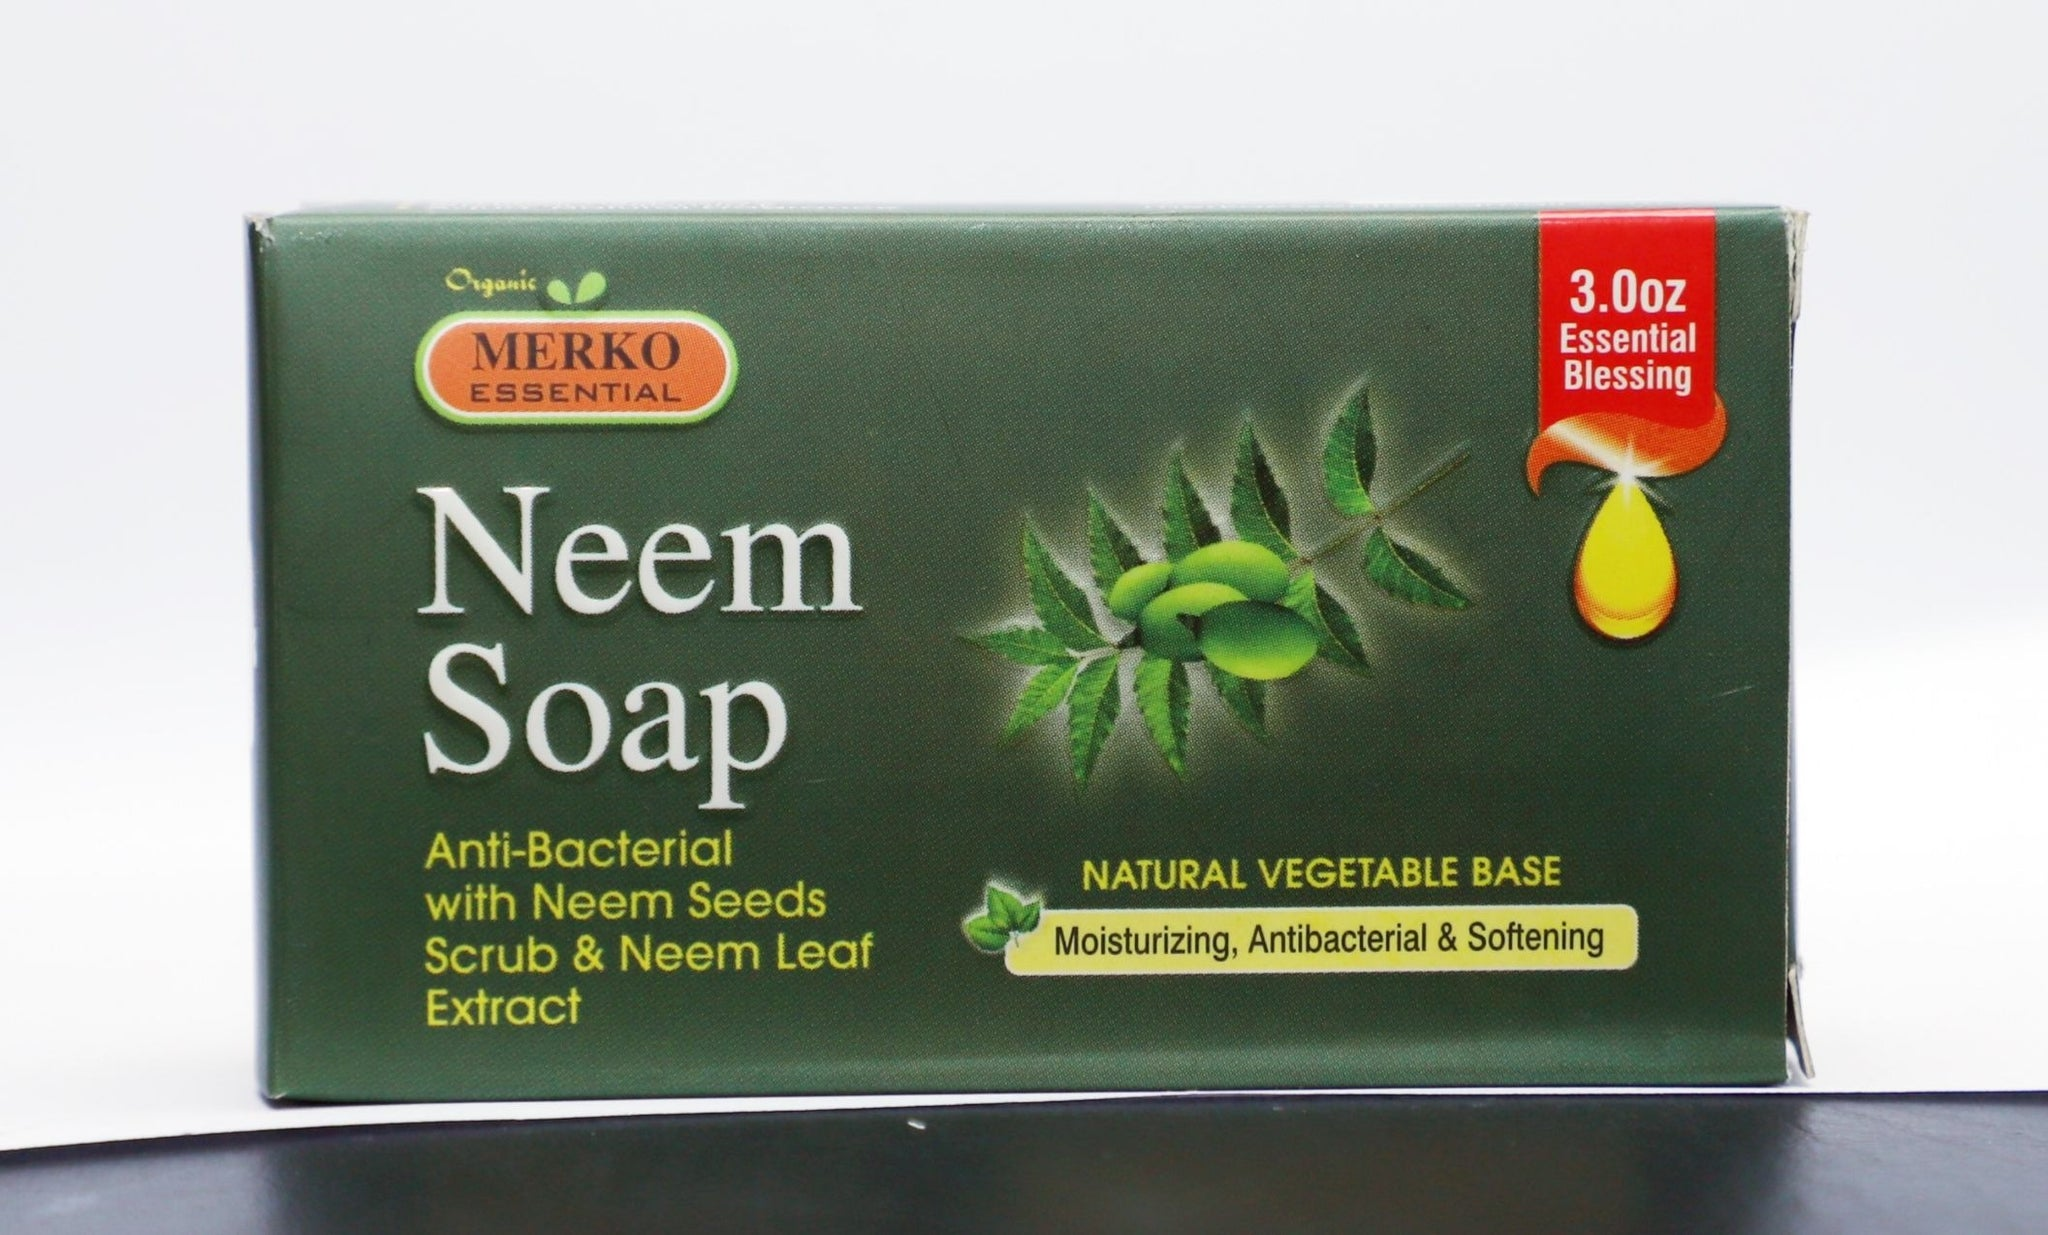 Merko Essential Neem Soap For All Skin